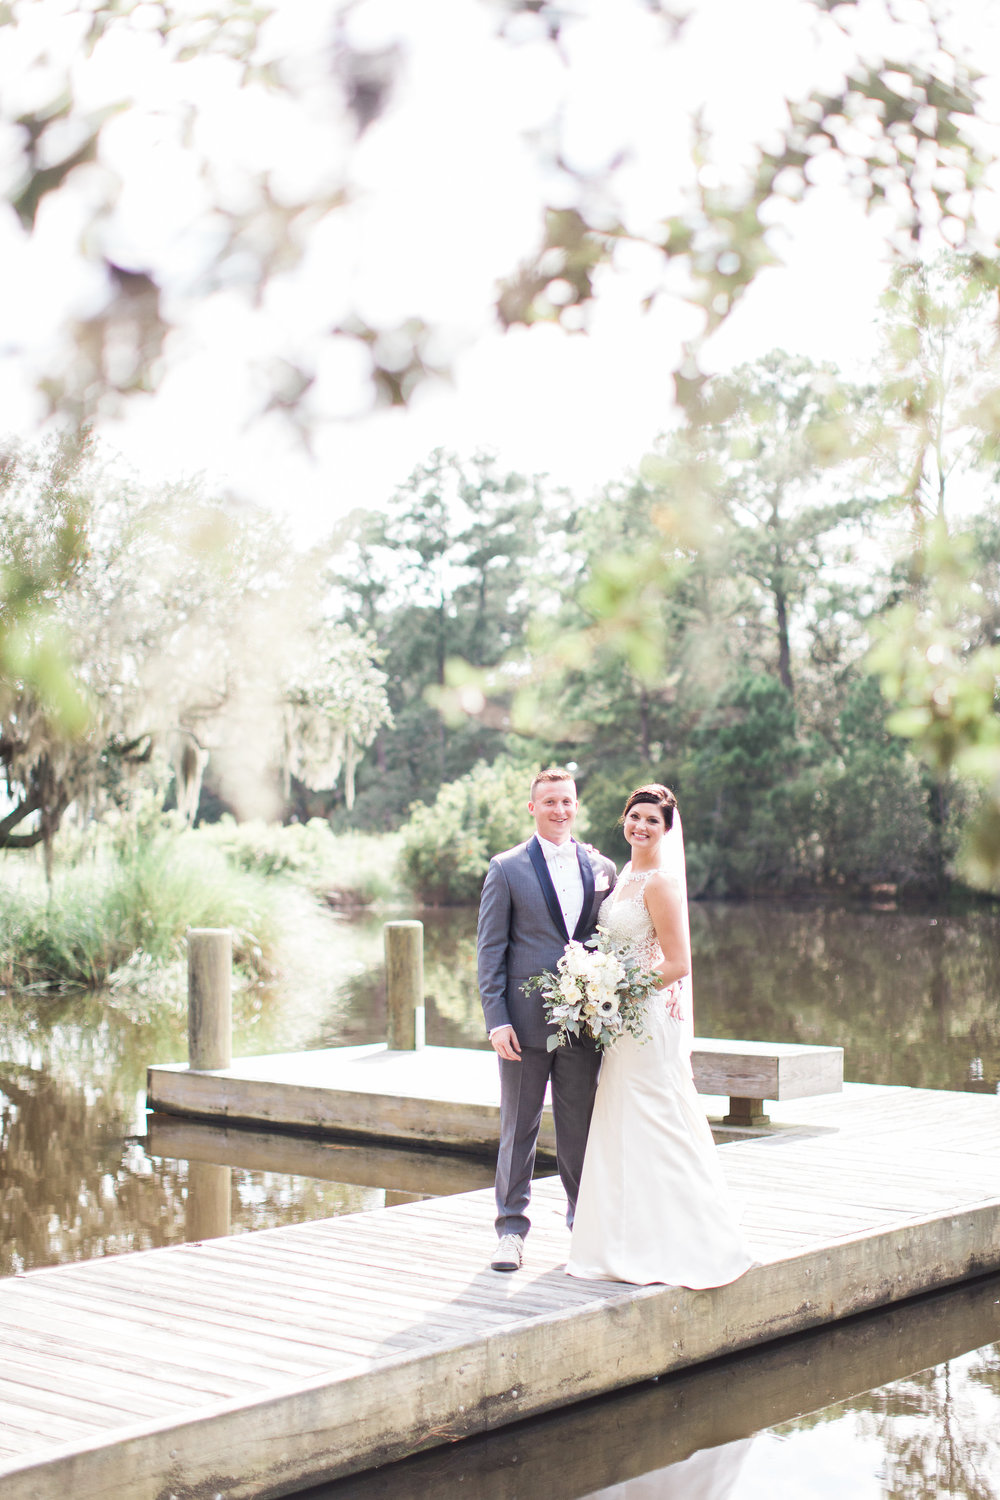 apt-b-photography-lauren-graham-oldfield-wedding-south-carolina-wedding-photographer-savannah-wedding-lowcountry-wedding-coastal-wedding-first-look-14.JPG